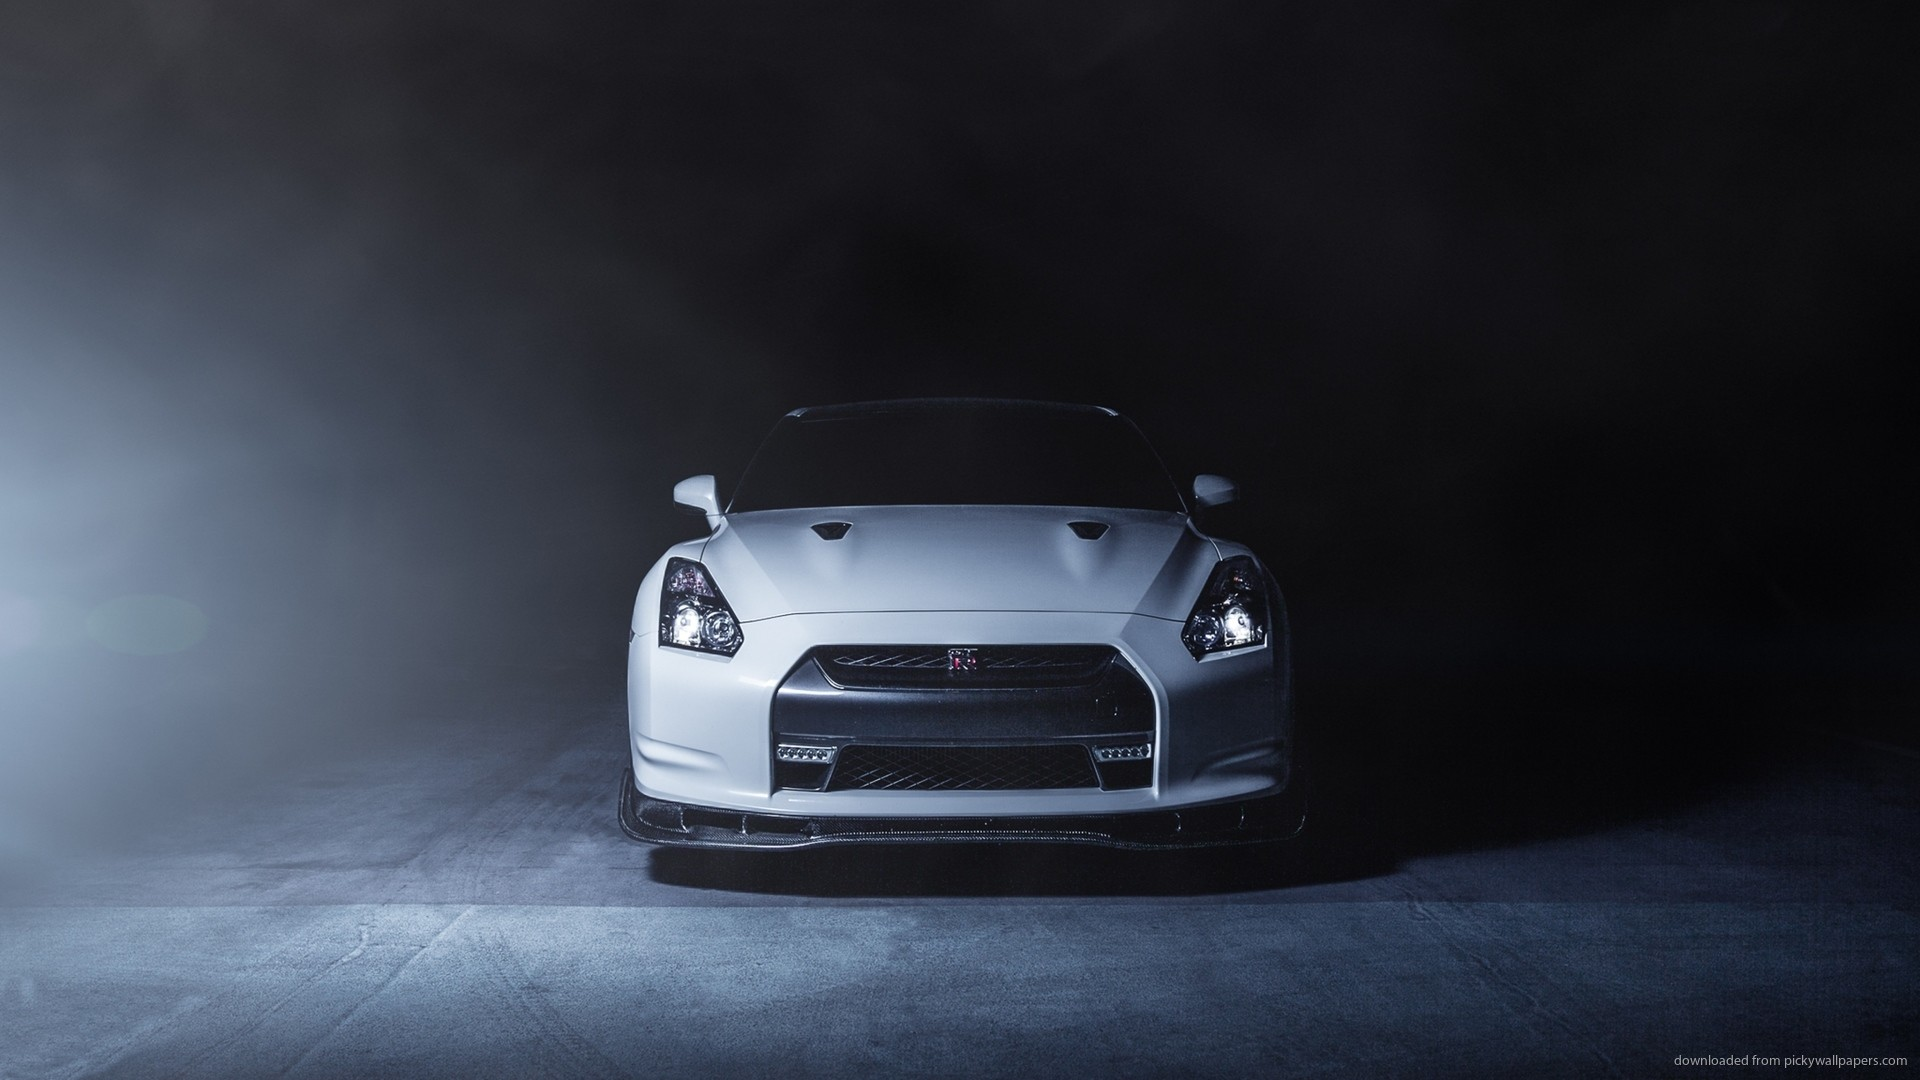 White Nissan GTR Widescreen Wallpaper picture